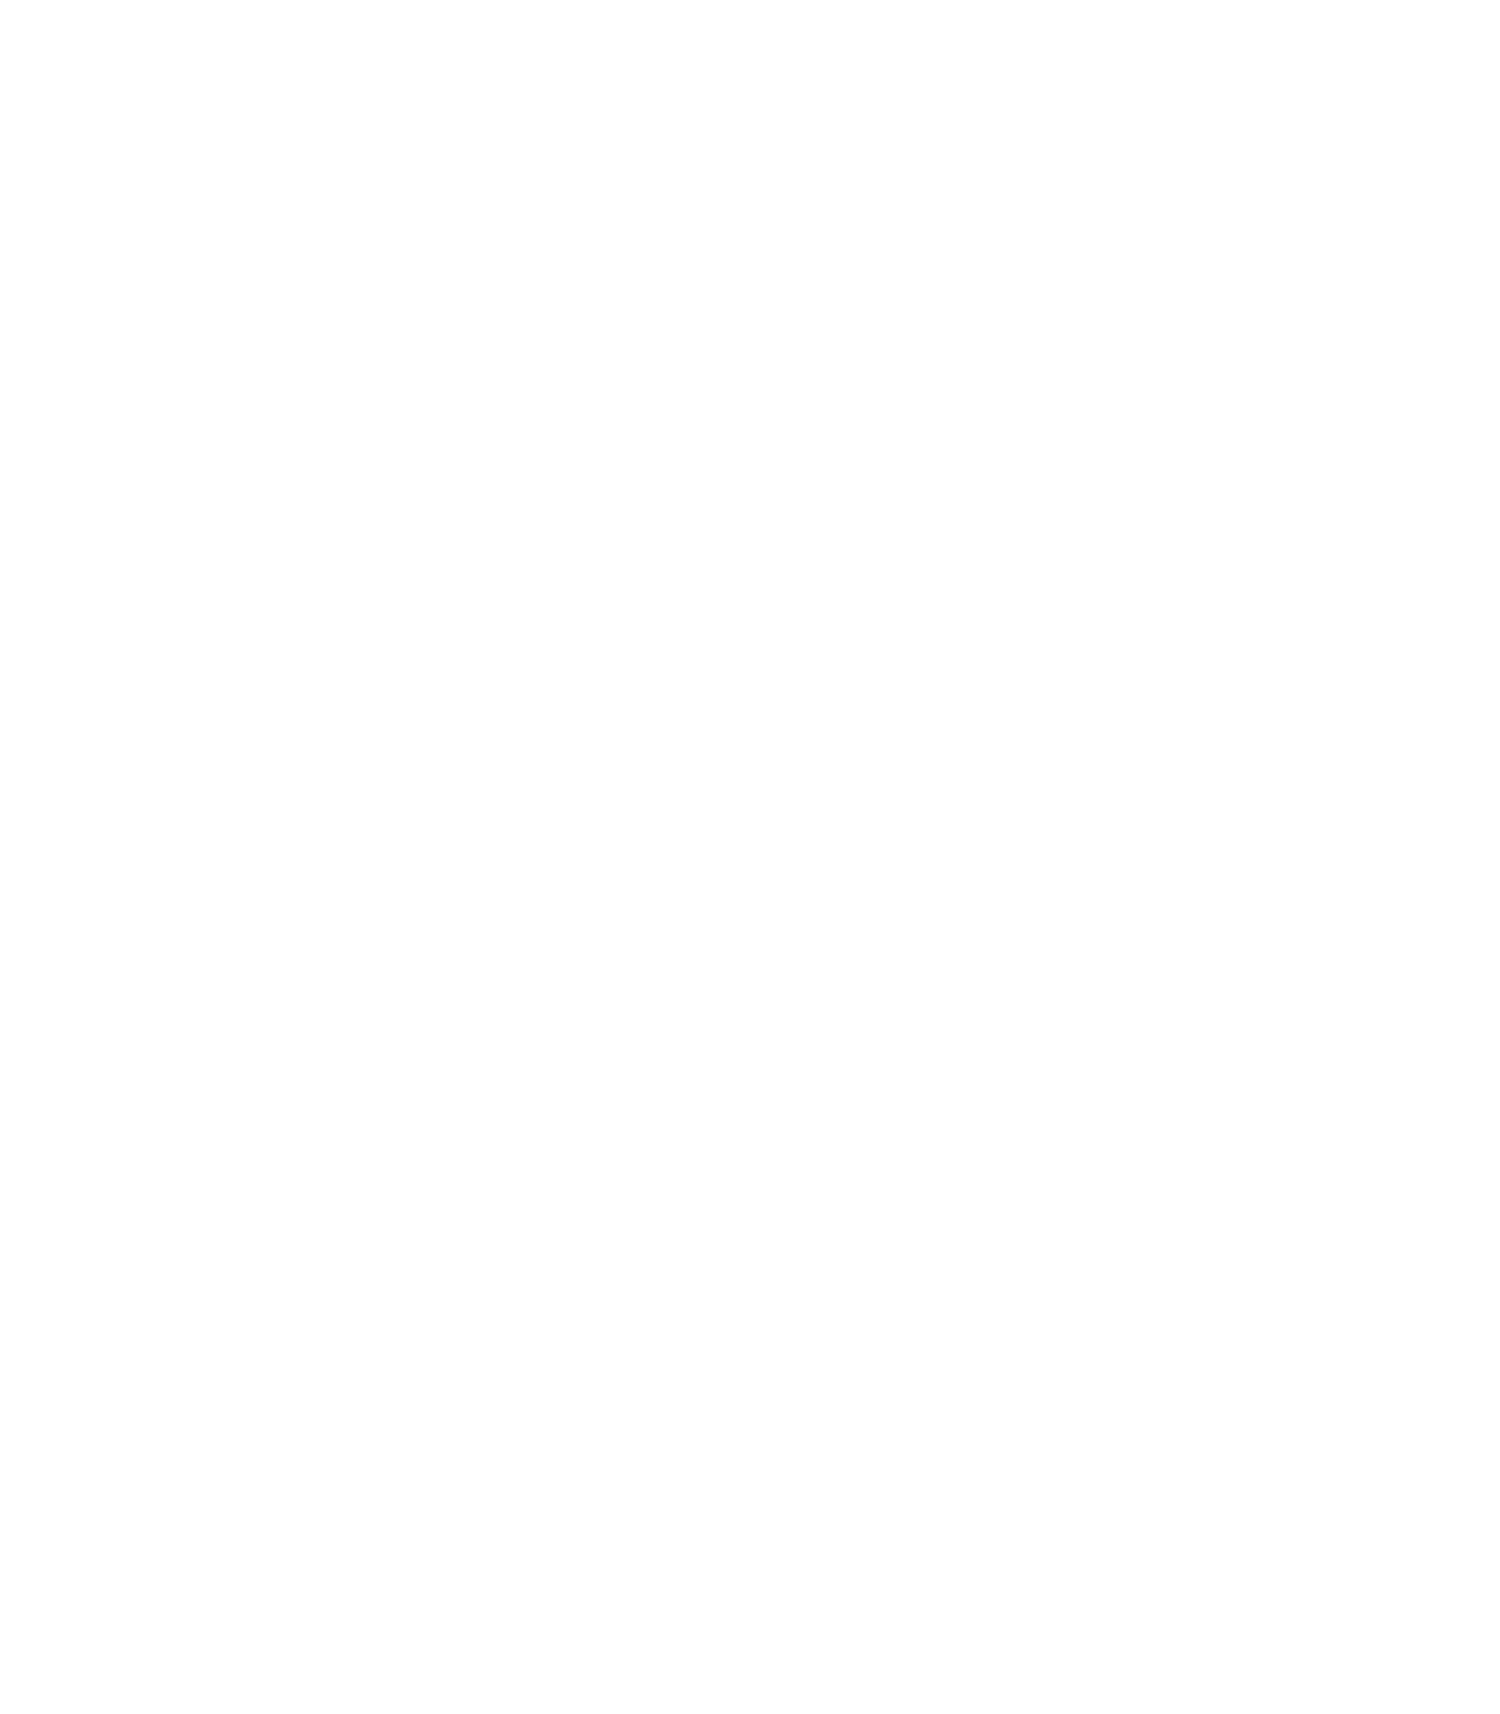 SIDETWO